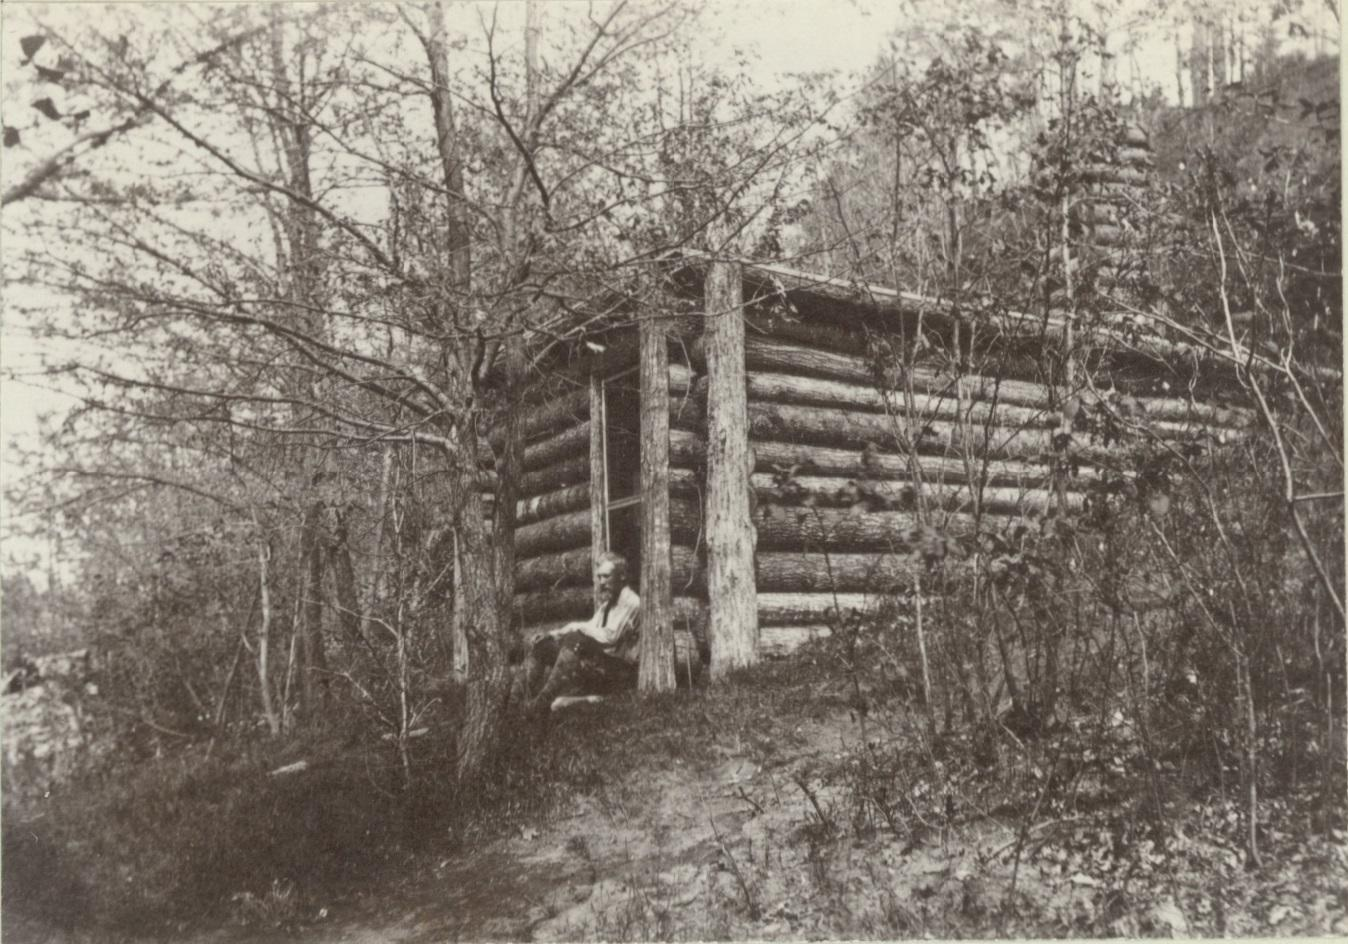 Brewster seated in front of cabin.